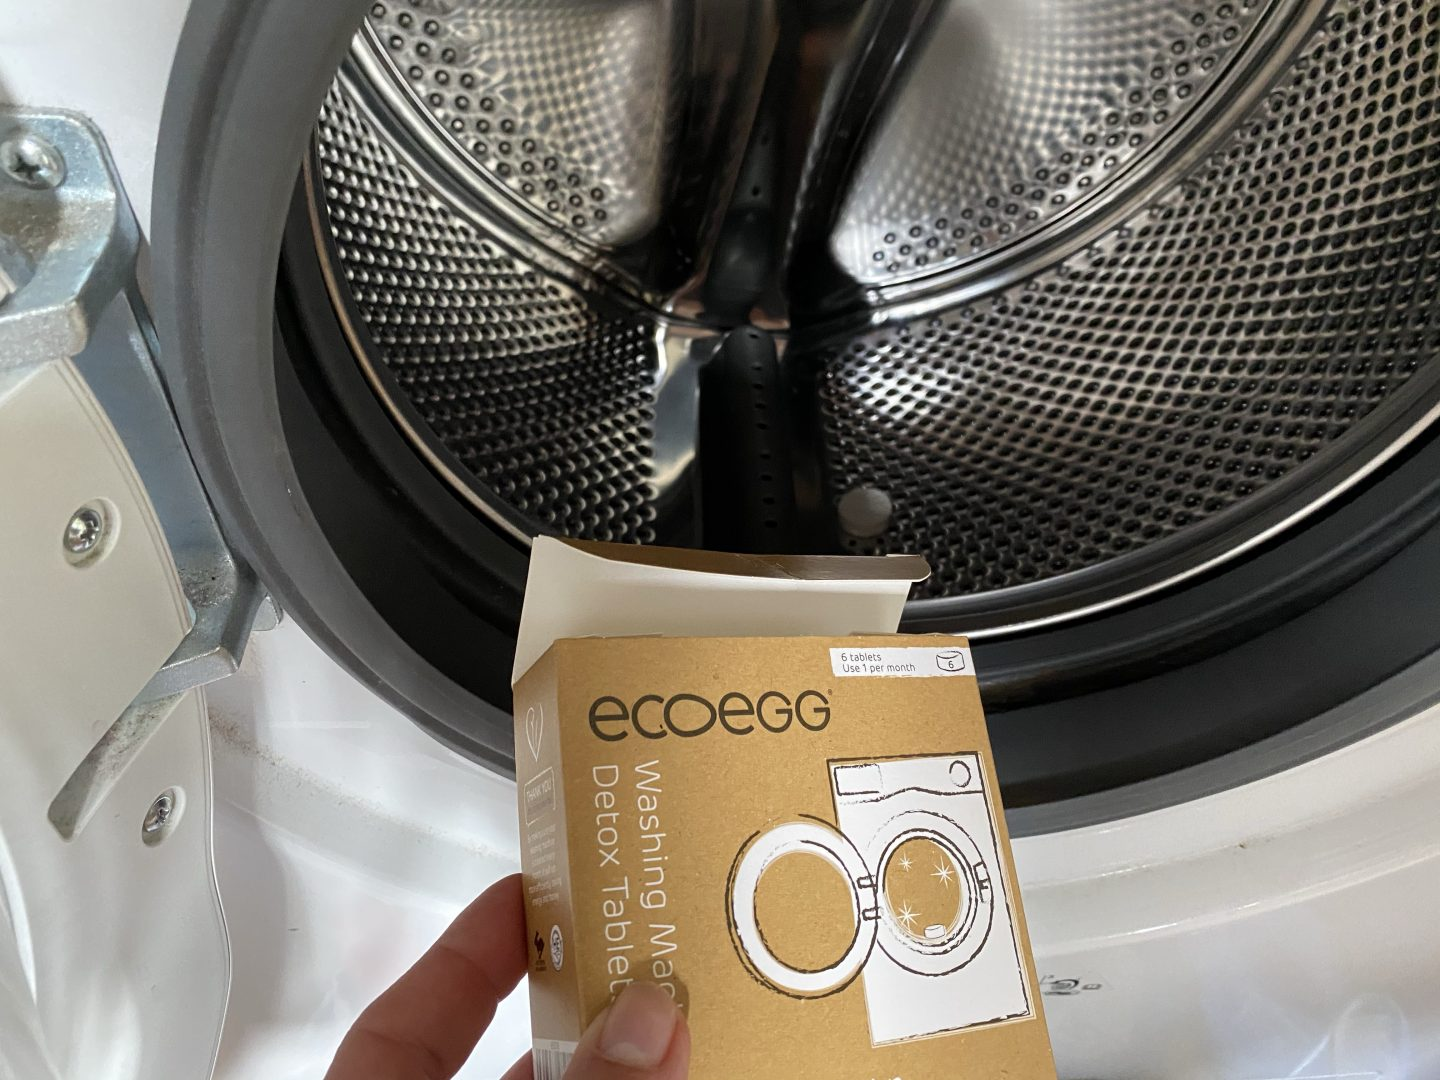 ecoegg detox tablets in a washing machine